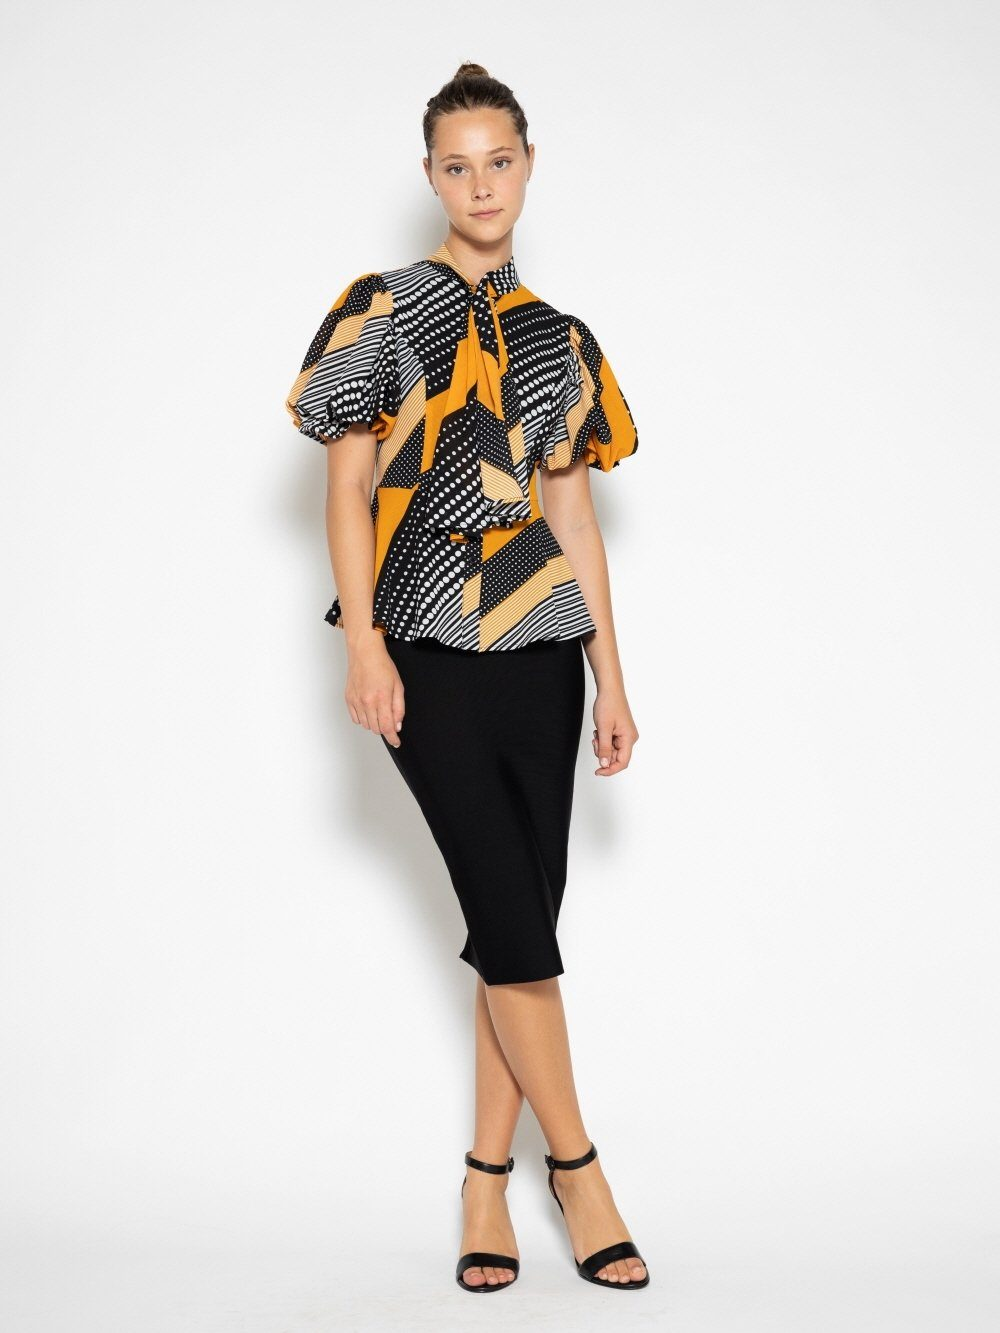 Dot and Stripe Top with Knot Neckline TOP Gracia Fashion BLACK/MUSTARD S